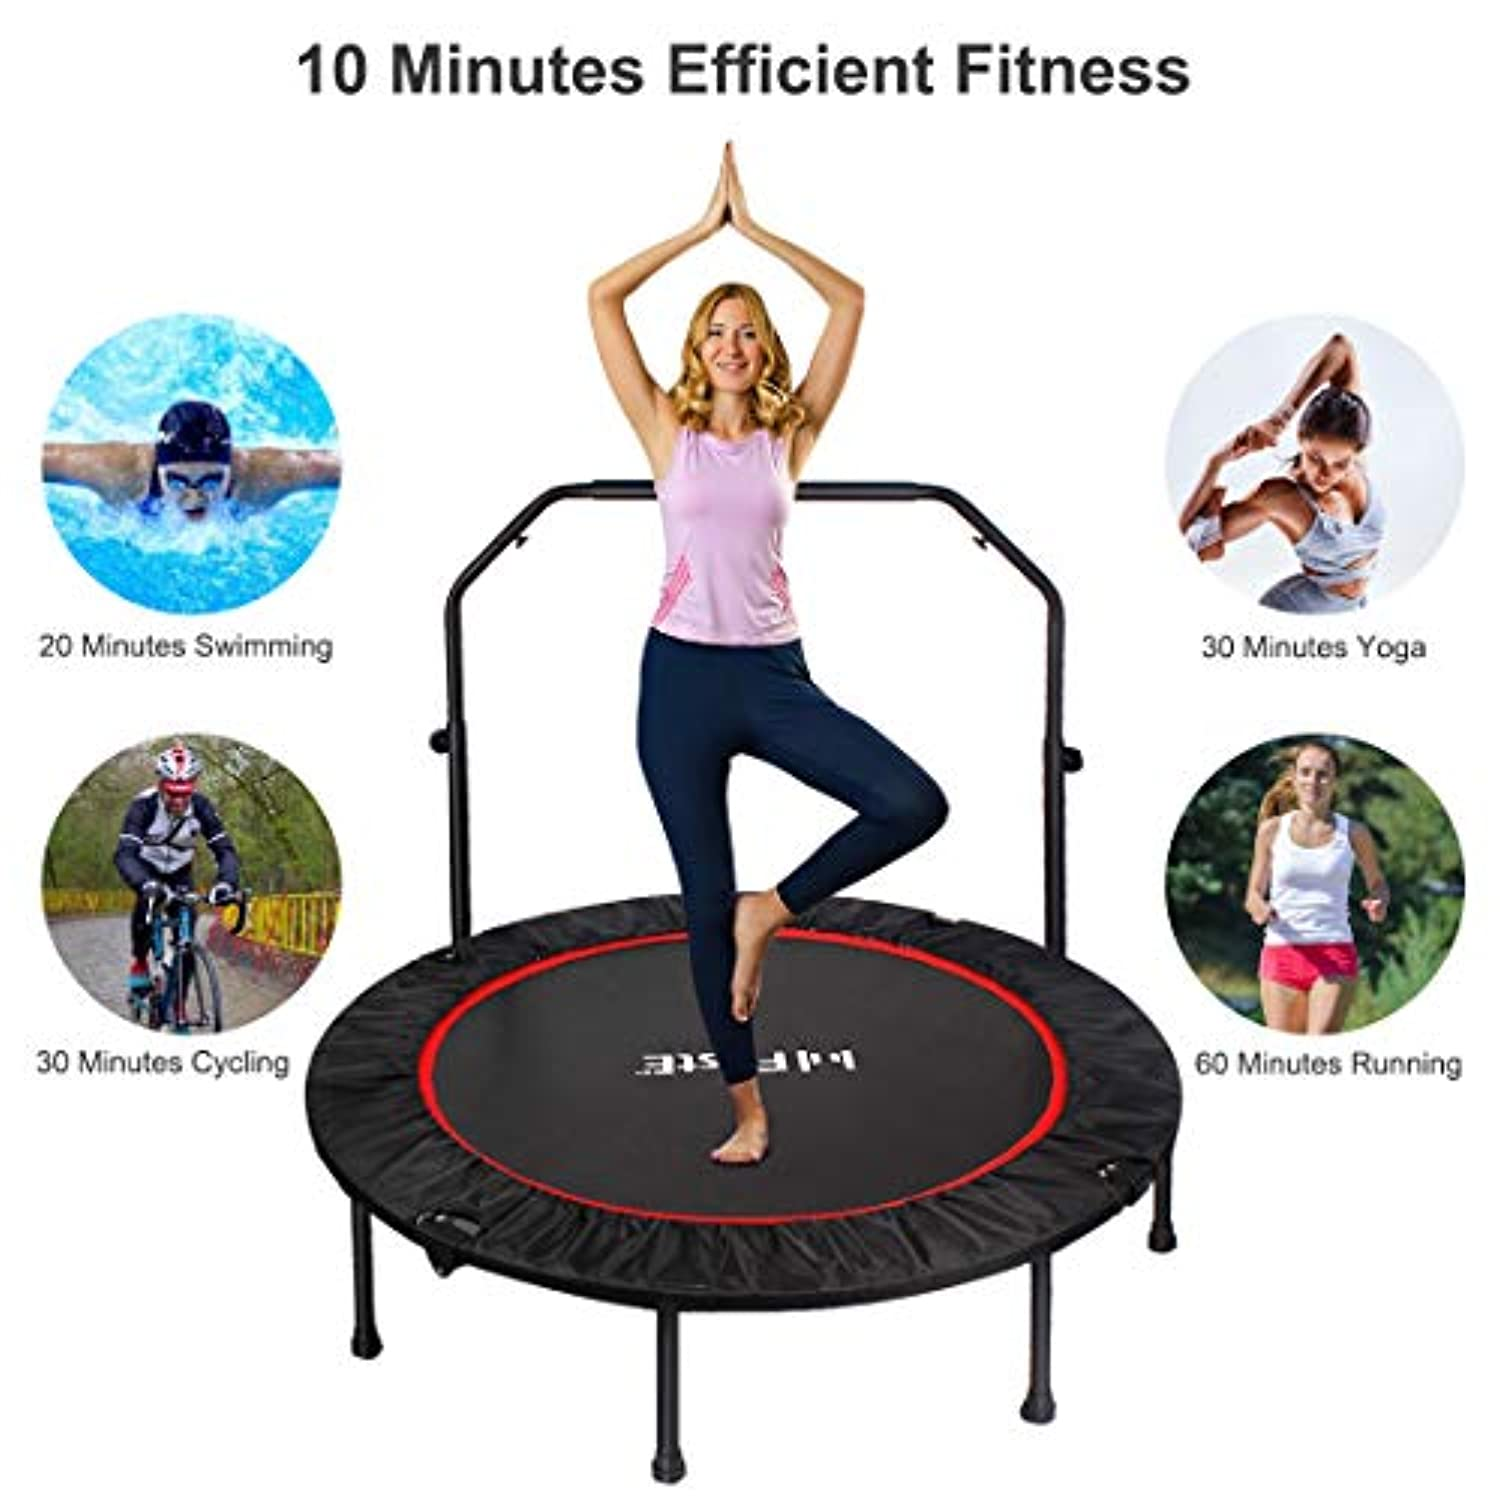 PAGLE Trampoline for Kids and Adults 48 Inch Upgraded Foldable Children Trampoline Portable Trampoline Padded Cover Exercise with Parents Use for Child Age 3+ for Indoor and Outdoor